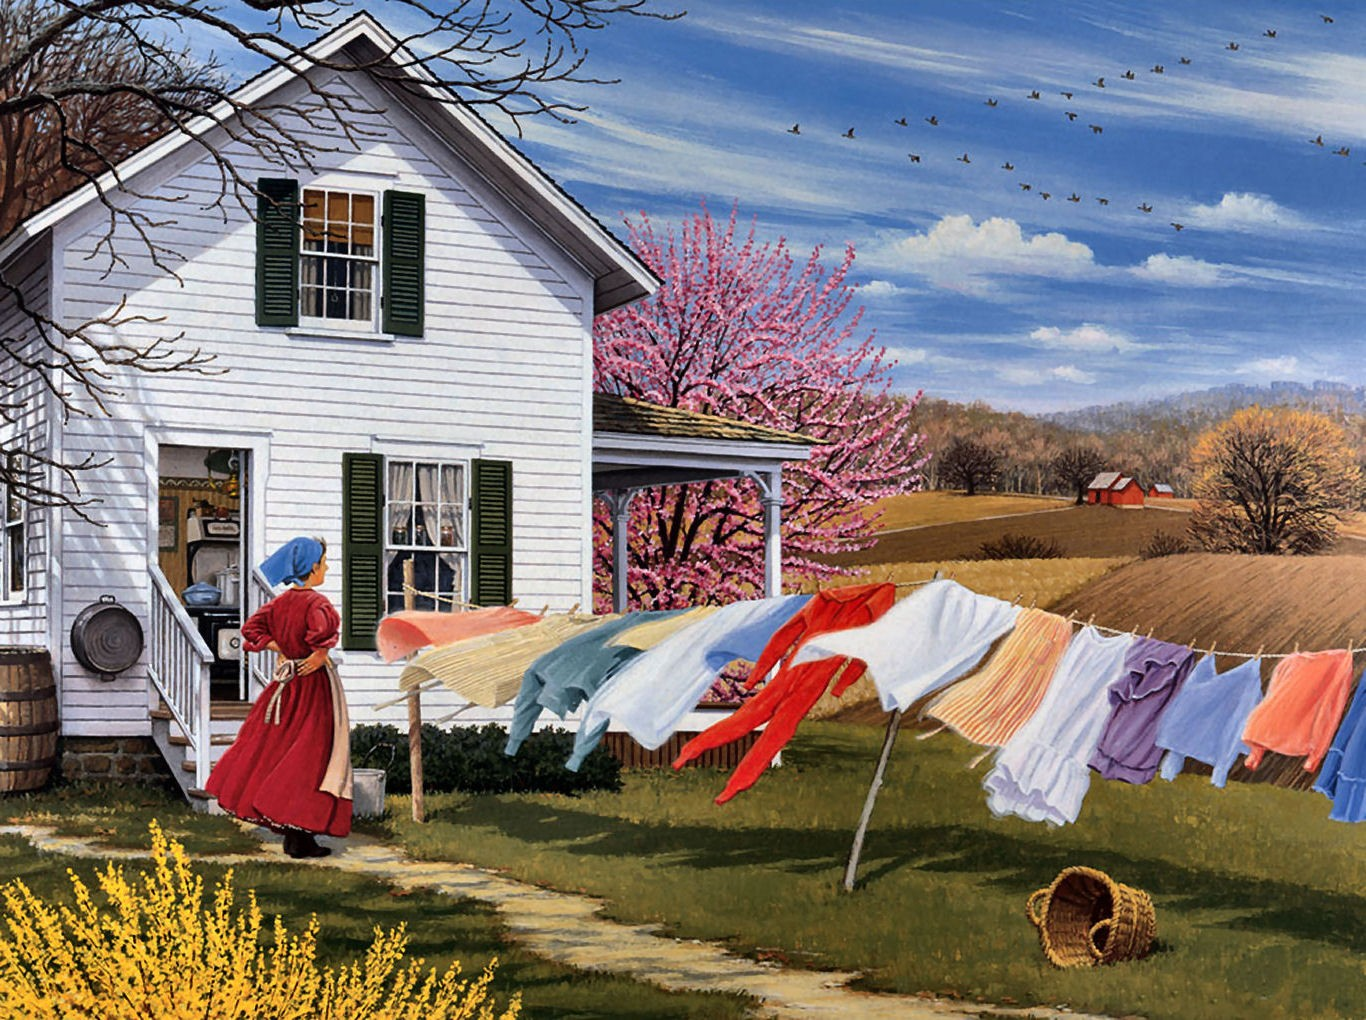 forces-of-nature-hanging-geese-autumn-out-painting-wash-wind-artwork-scenery-art-laundry-landscape-desktop-wallpaper-download-free.jpg